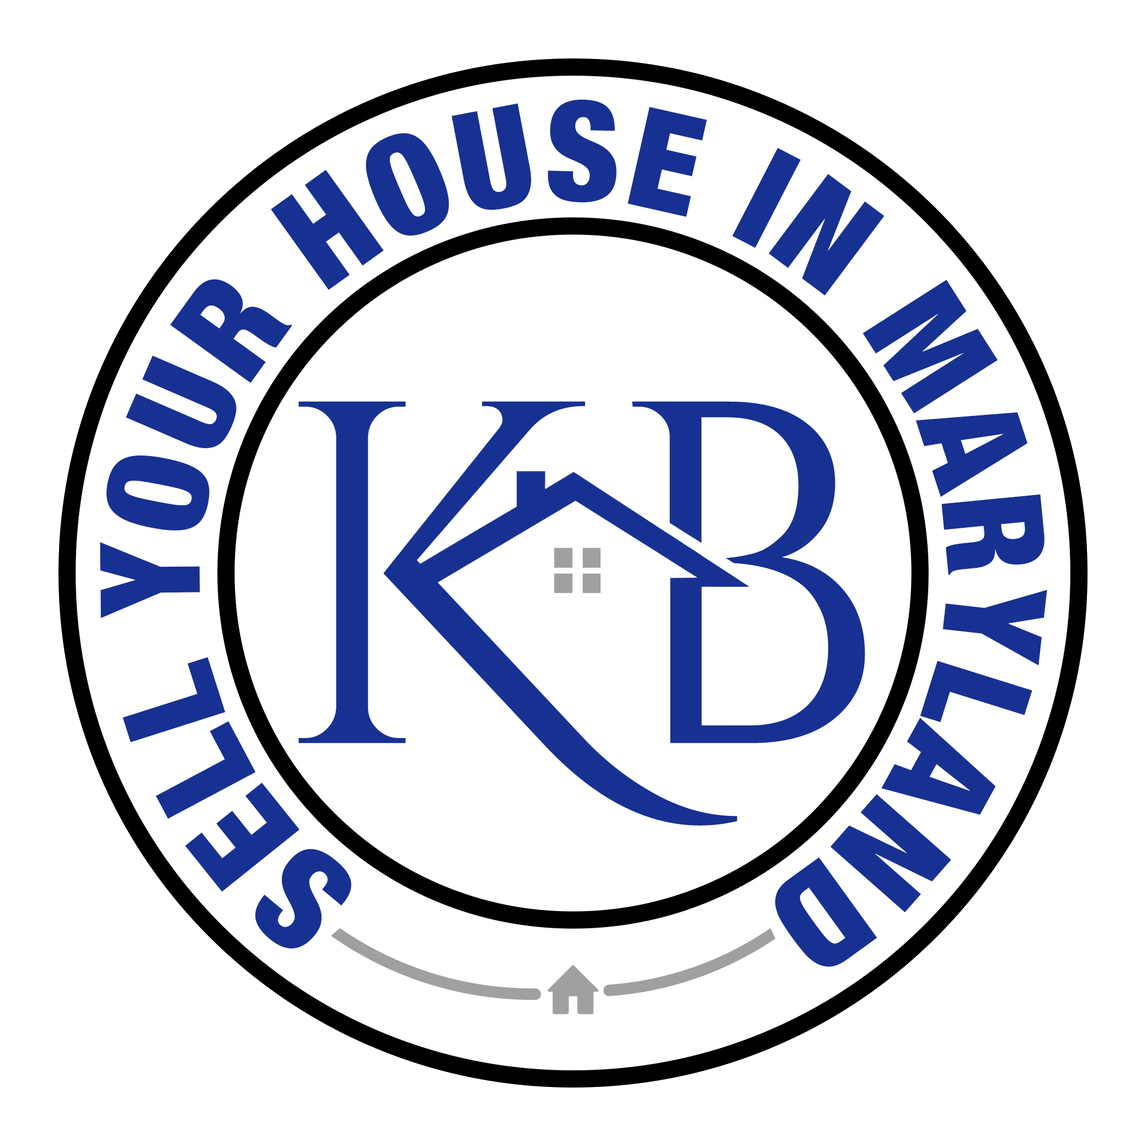 Sell Your House in Maryland logo